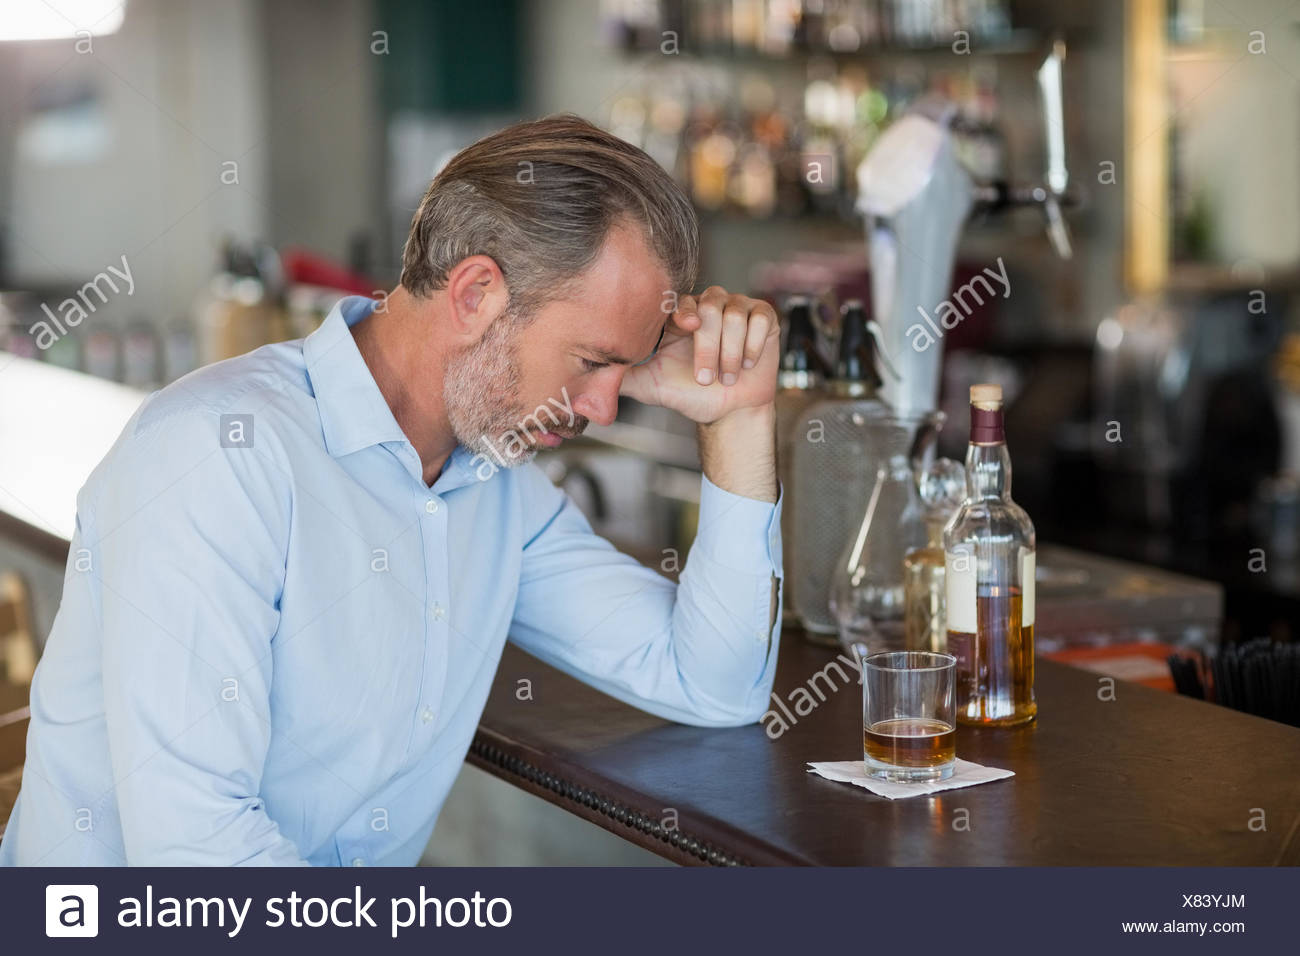 Tired man leaning his elbow on the counter - Stock Image